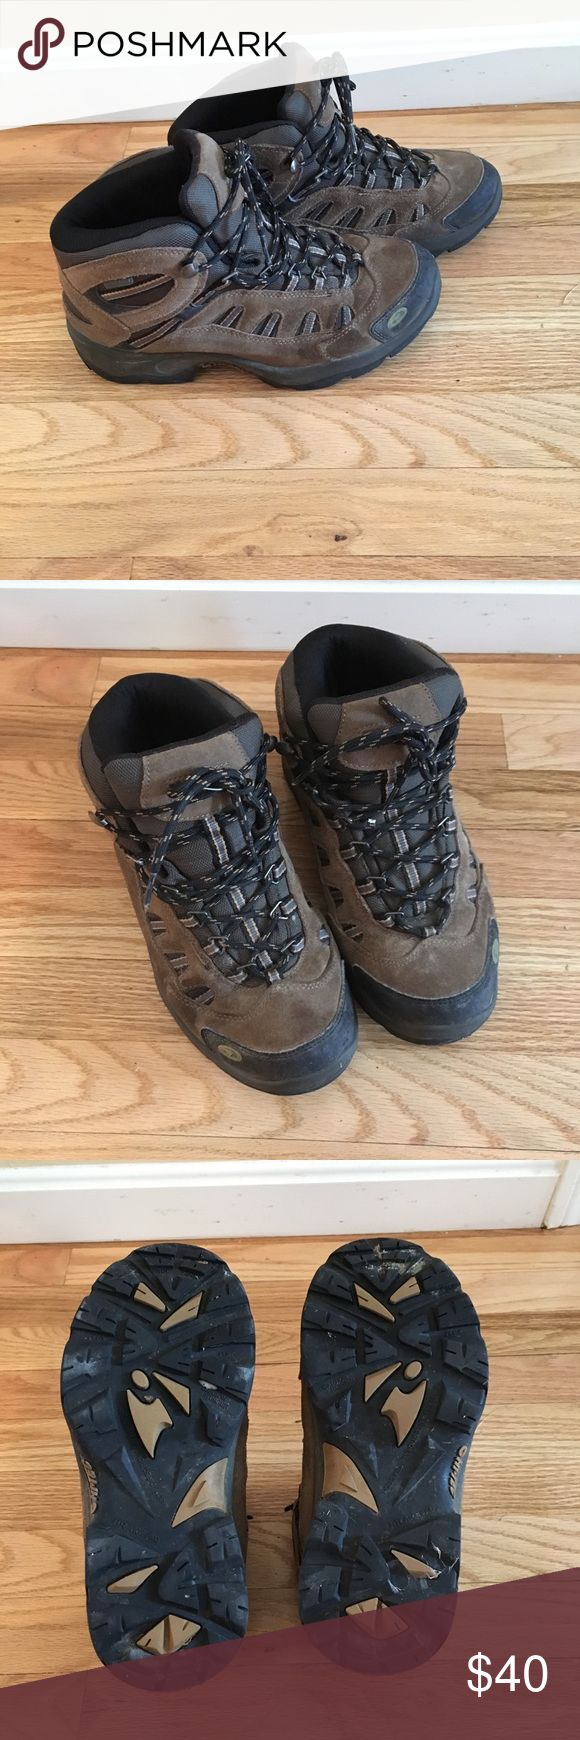 Waterproof hiking boots Hi Tec waterproof hiking boots, great condition Hi Tec Shoes Rain & Snow Boots